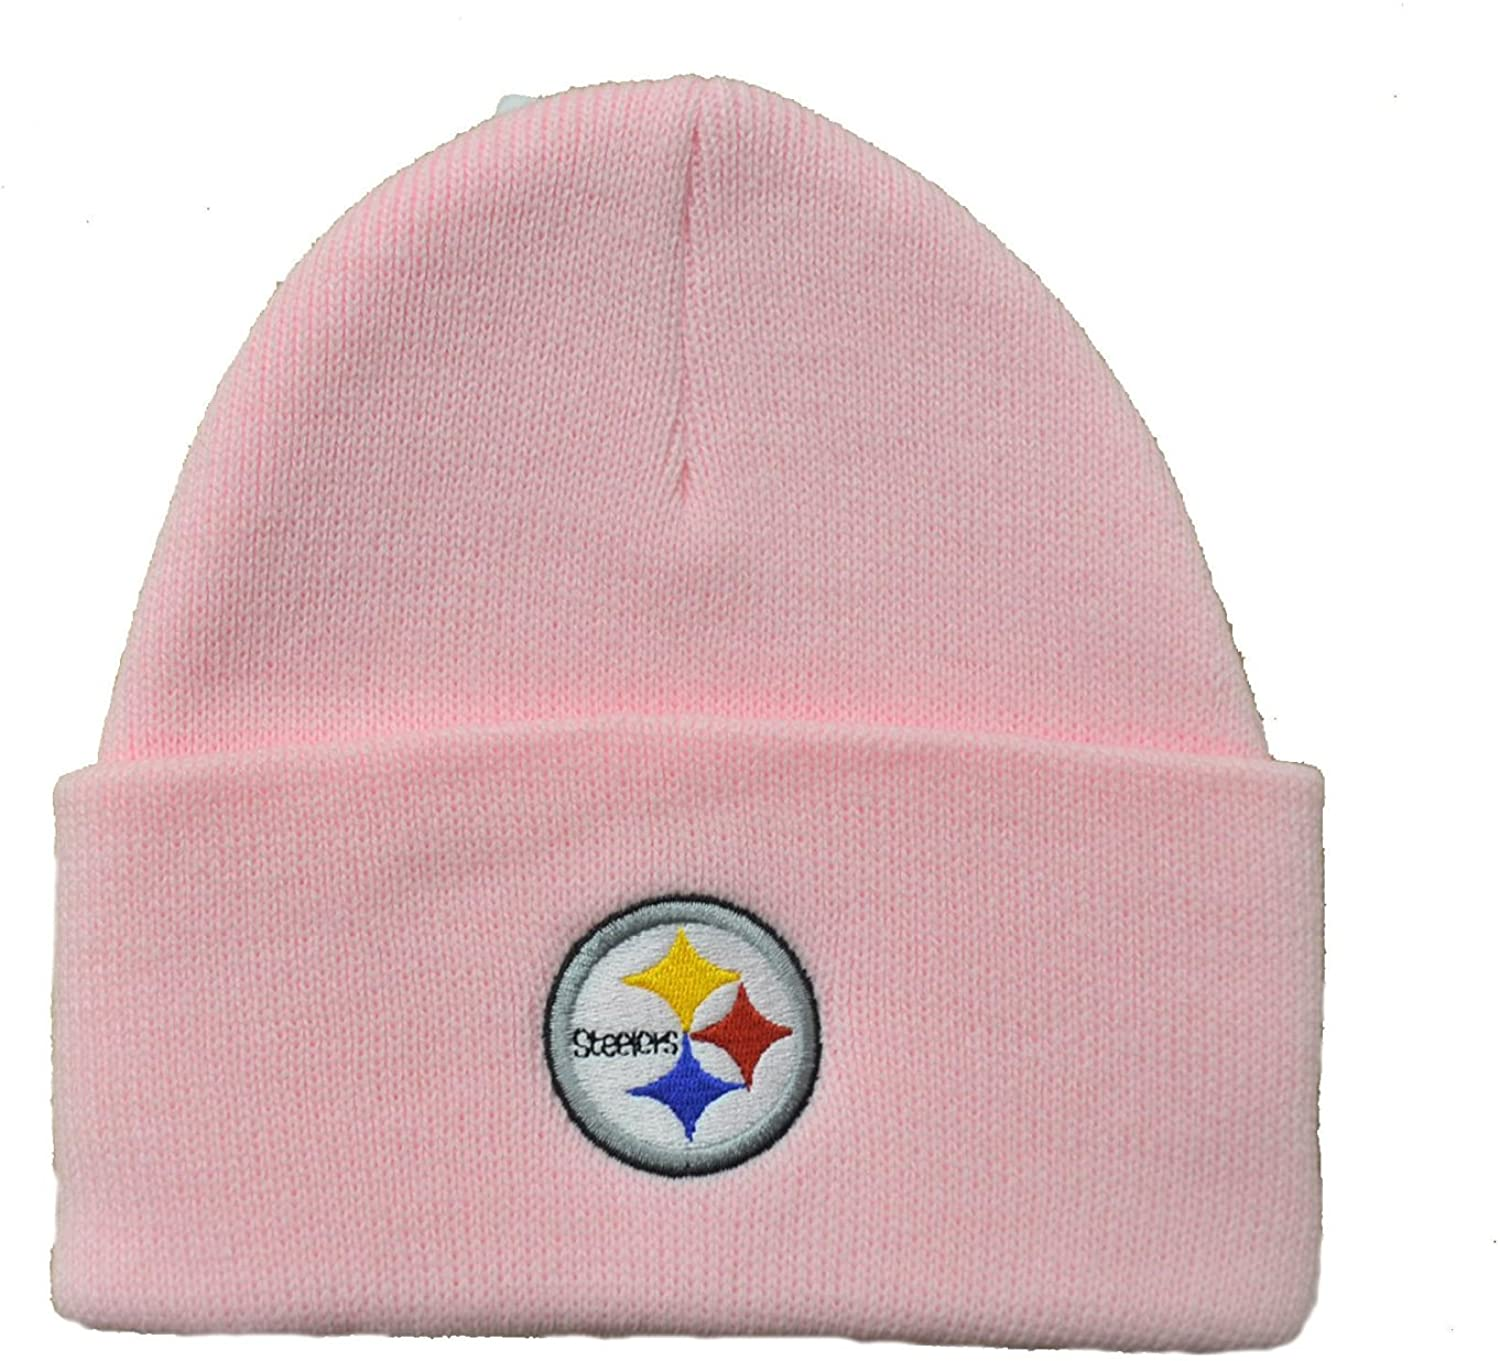 NFL Officially Licensed Basic Cuffed Logo Beanie Hat Cap Lid Skull (Pittsburgh Steelers Pink)